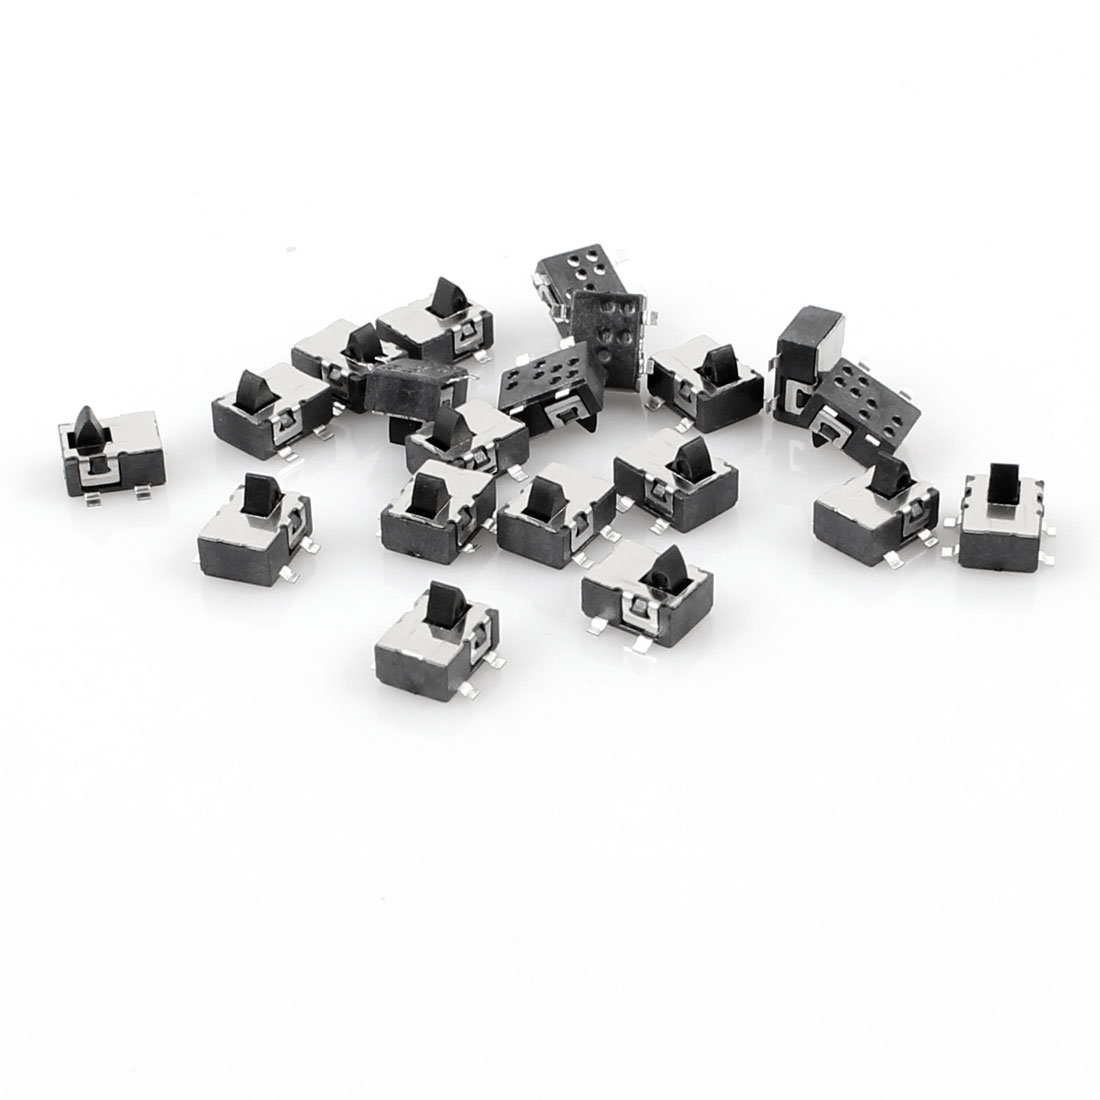 20 Pcs 4.8x3.8mm 4 Pin SPST Momentary PCB Mini SMD SMT Tactile Switch